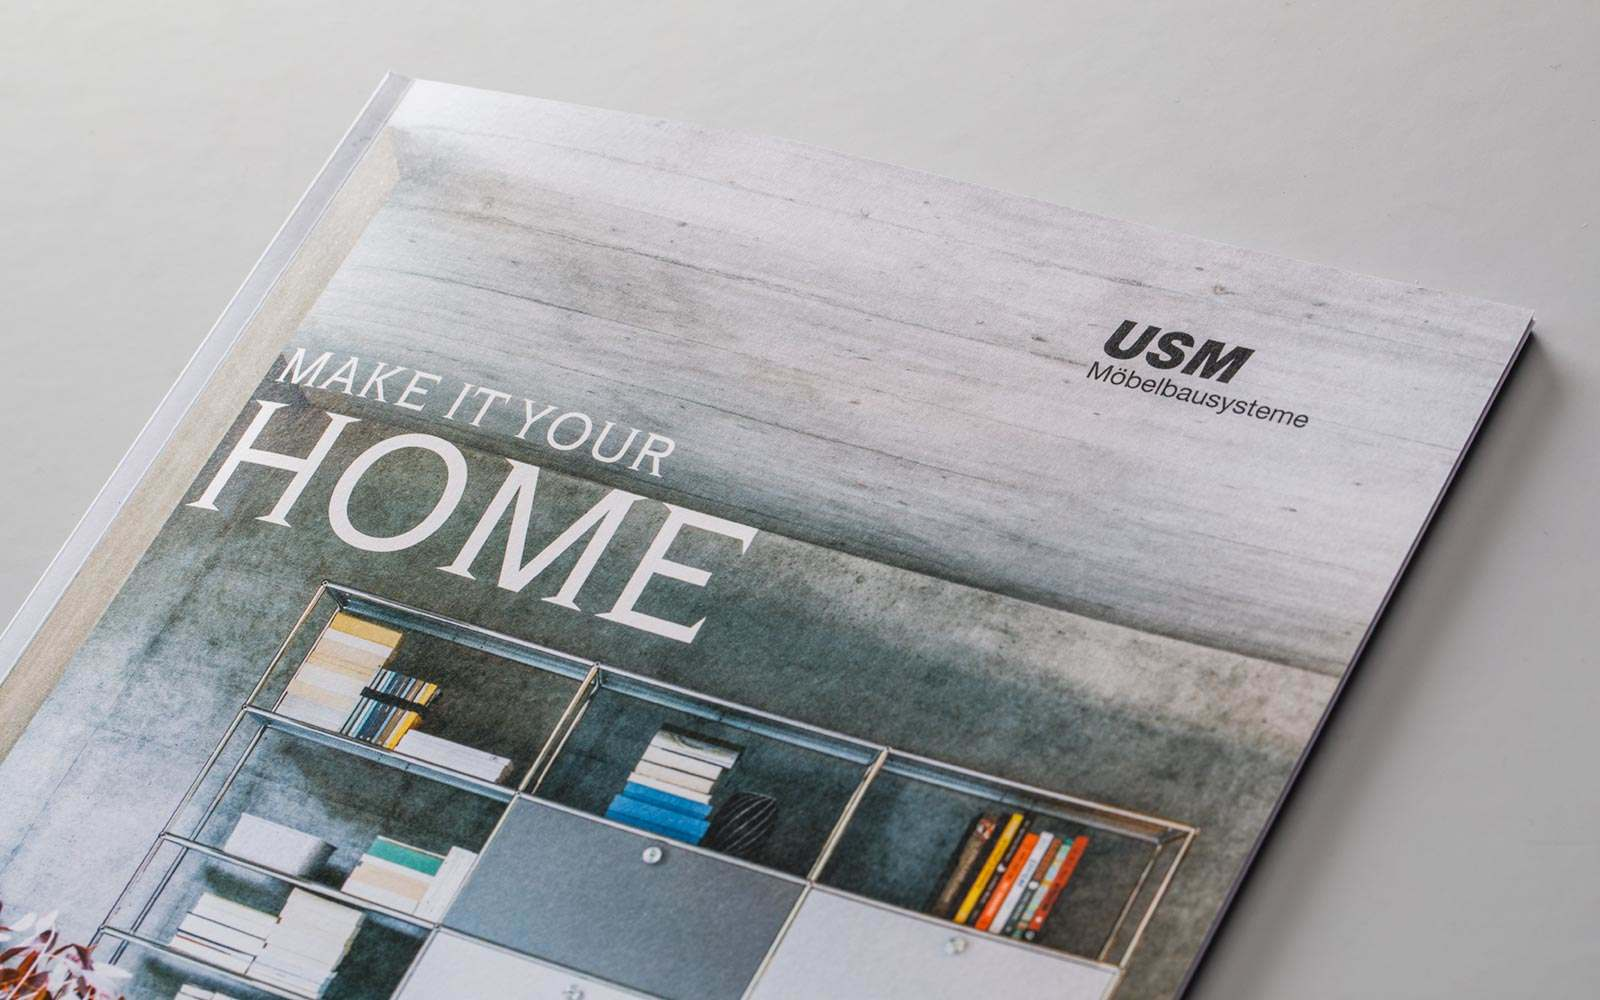 Usm Möbelbausysteme Usm Möbelbausysteme Make It Your Home P Inc Ag Communication